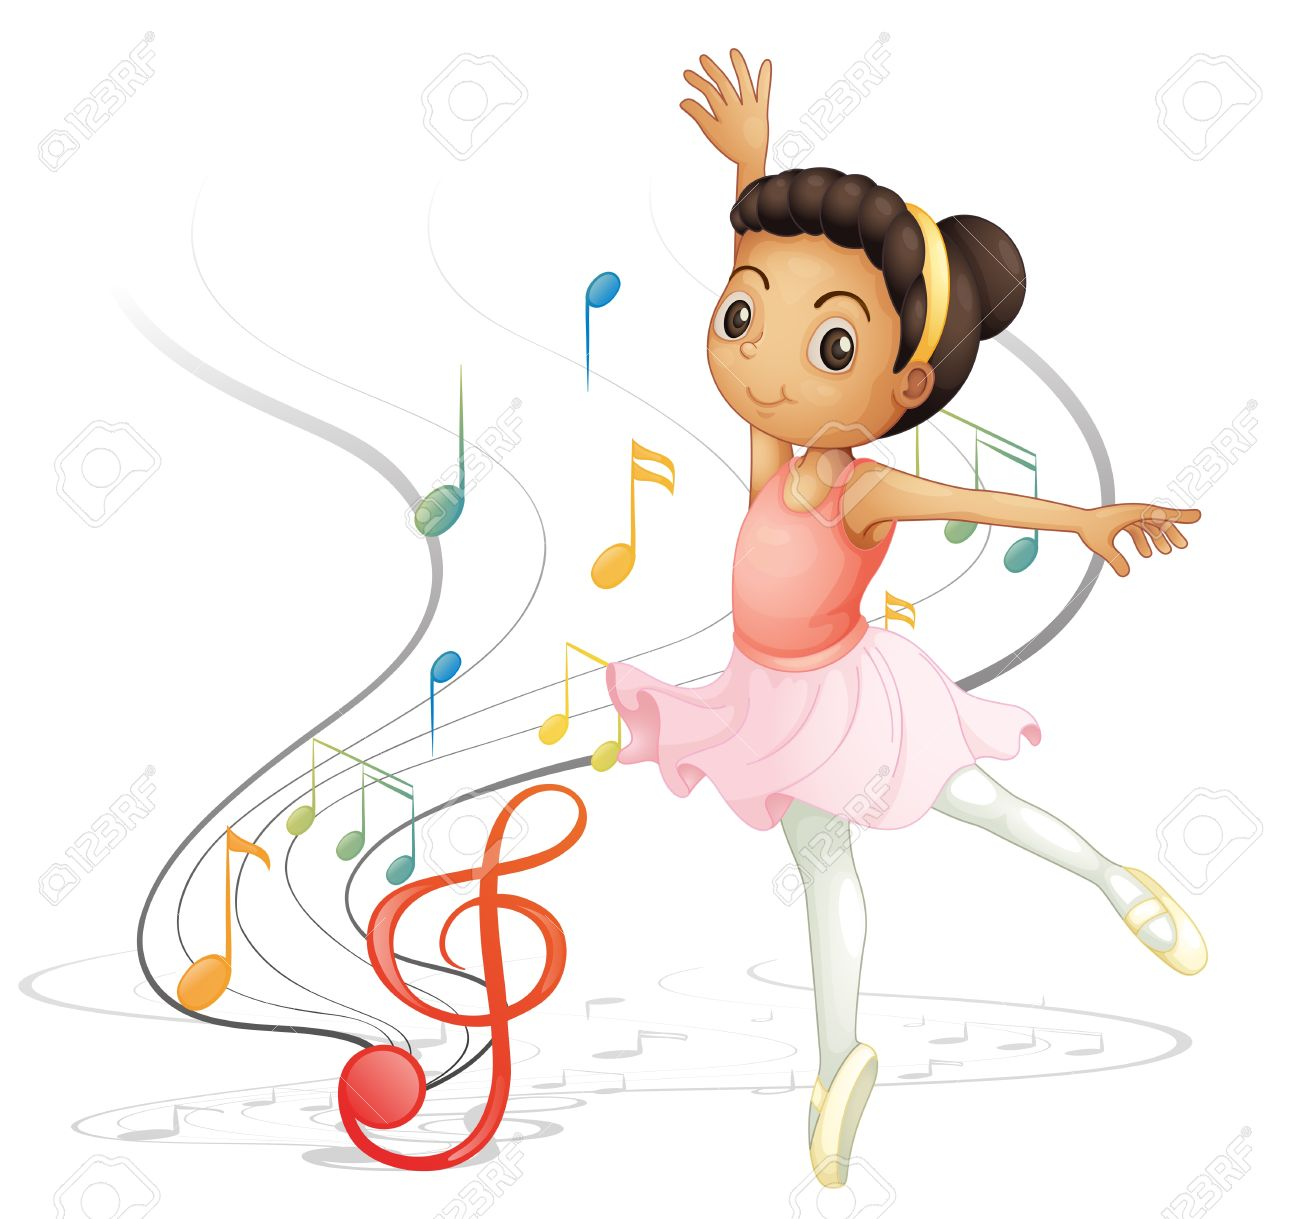 1300x1219 Illustration Of A Girl Dancing With Musical Notes On A White